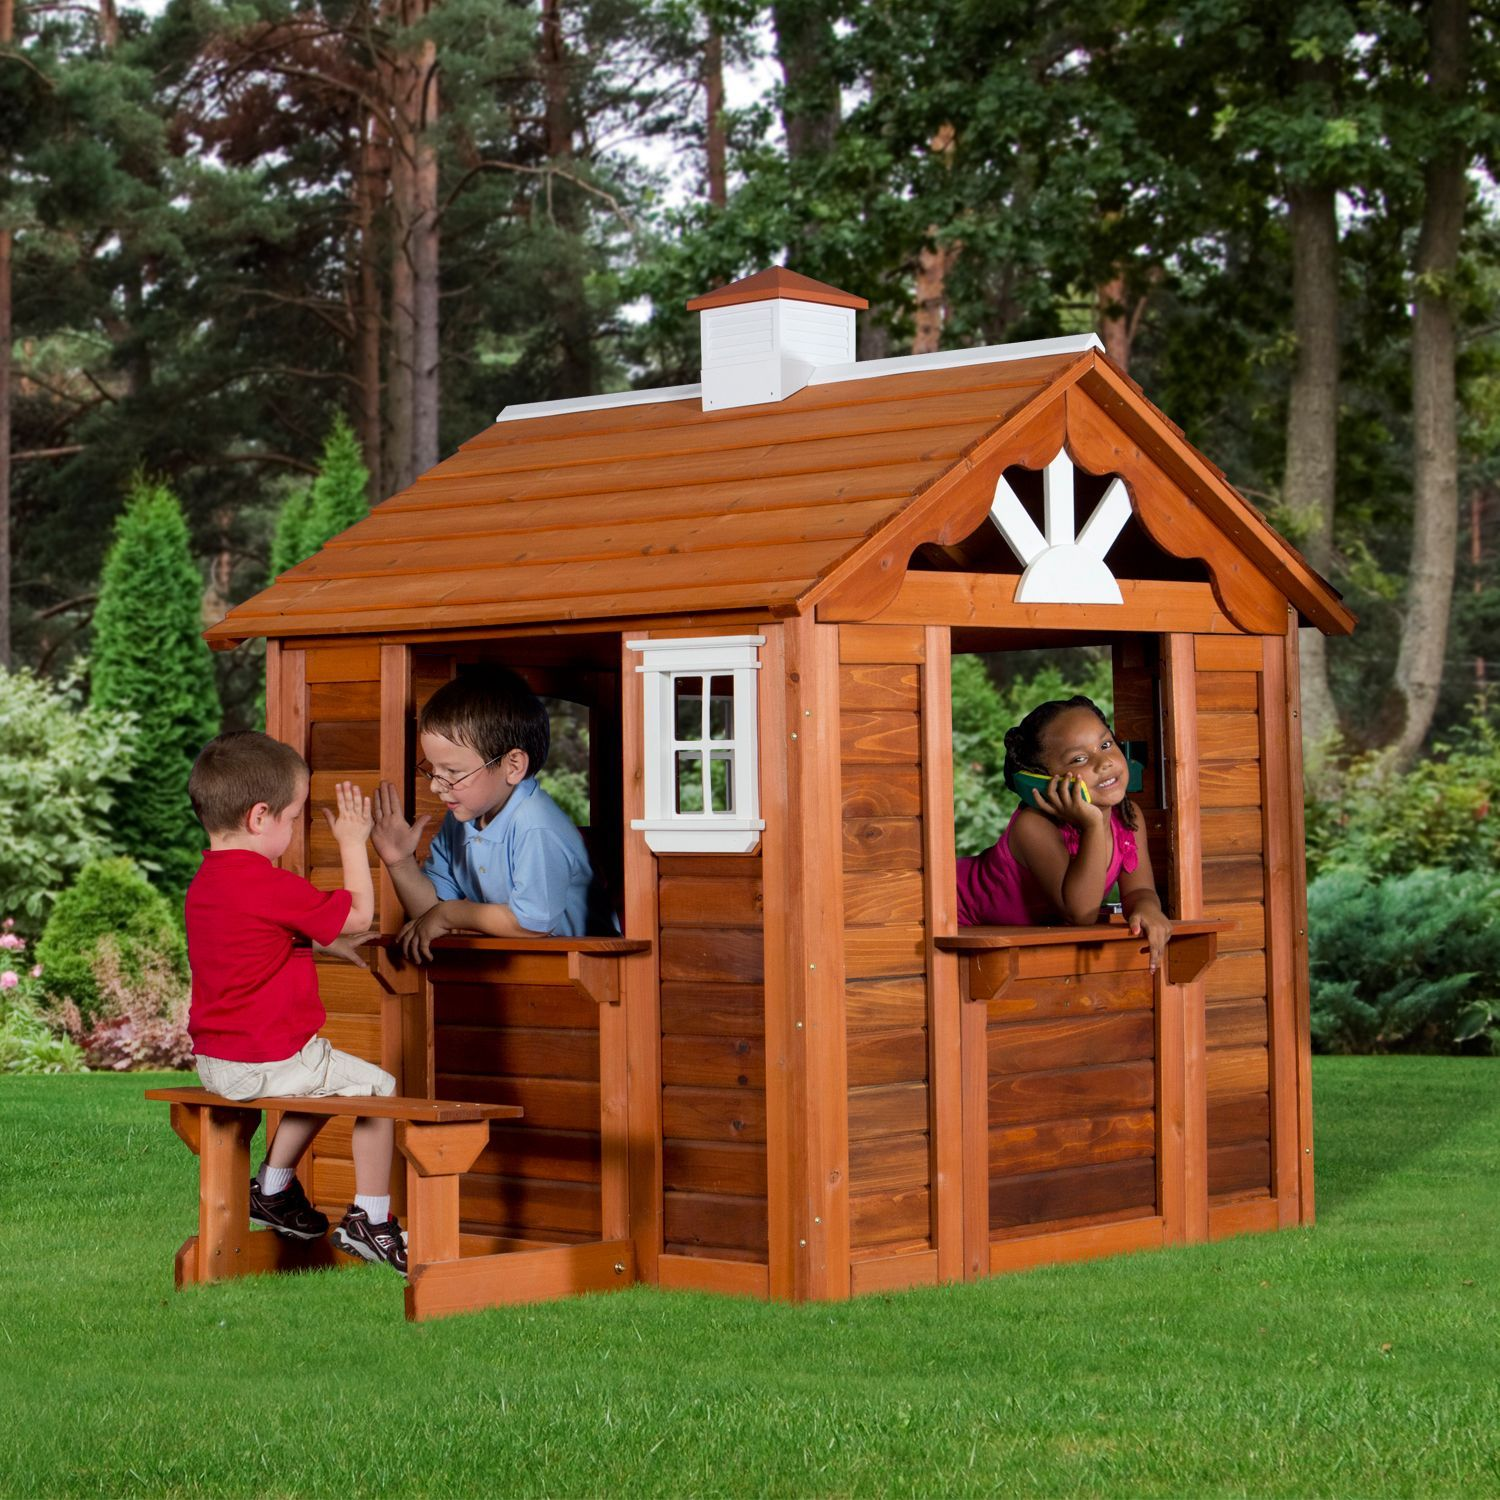 Children playhouse kids play fun outdoor garden log cabin for Kids outdoor playhouse